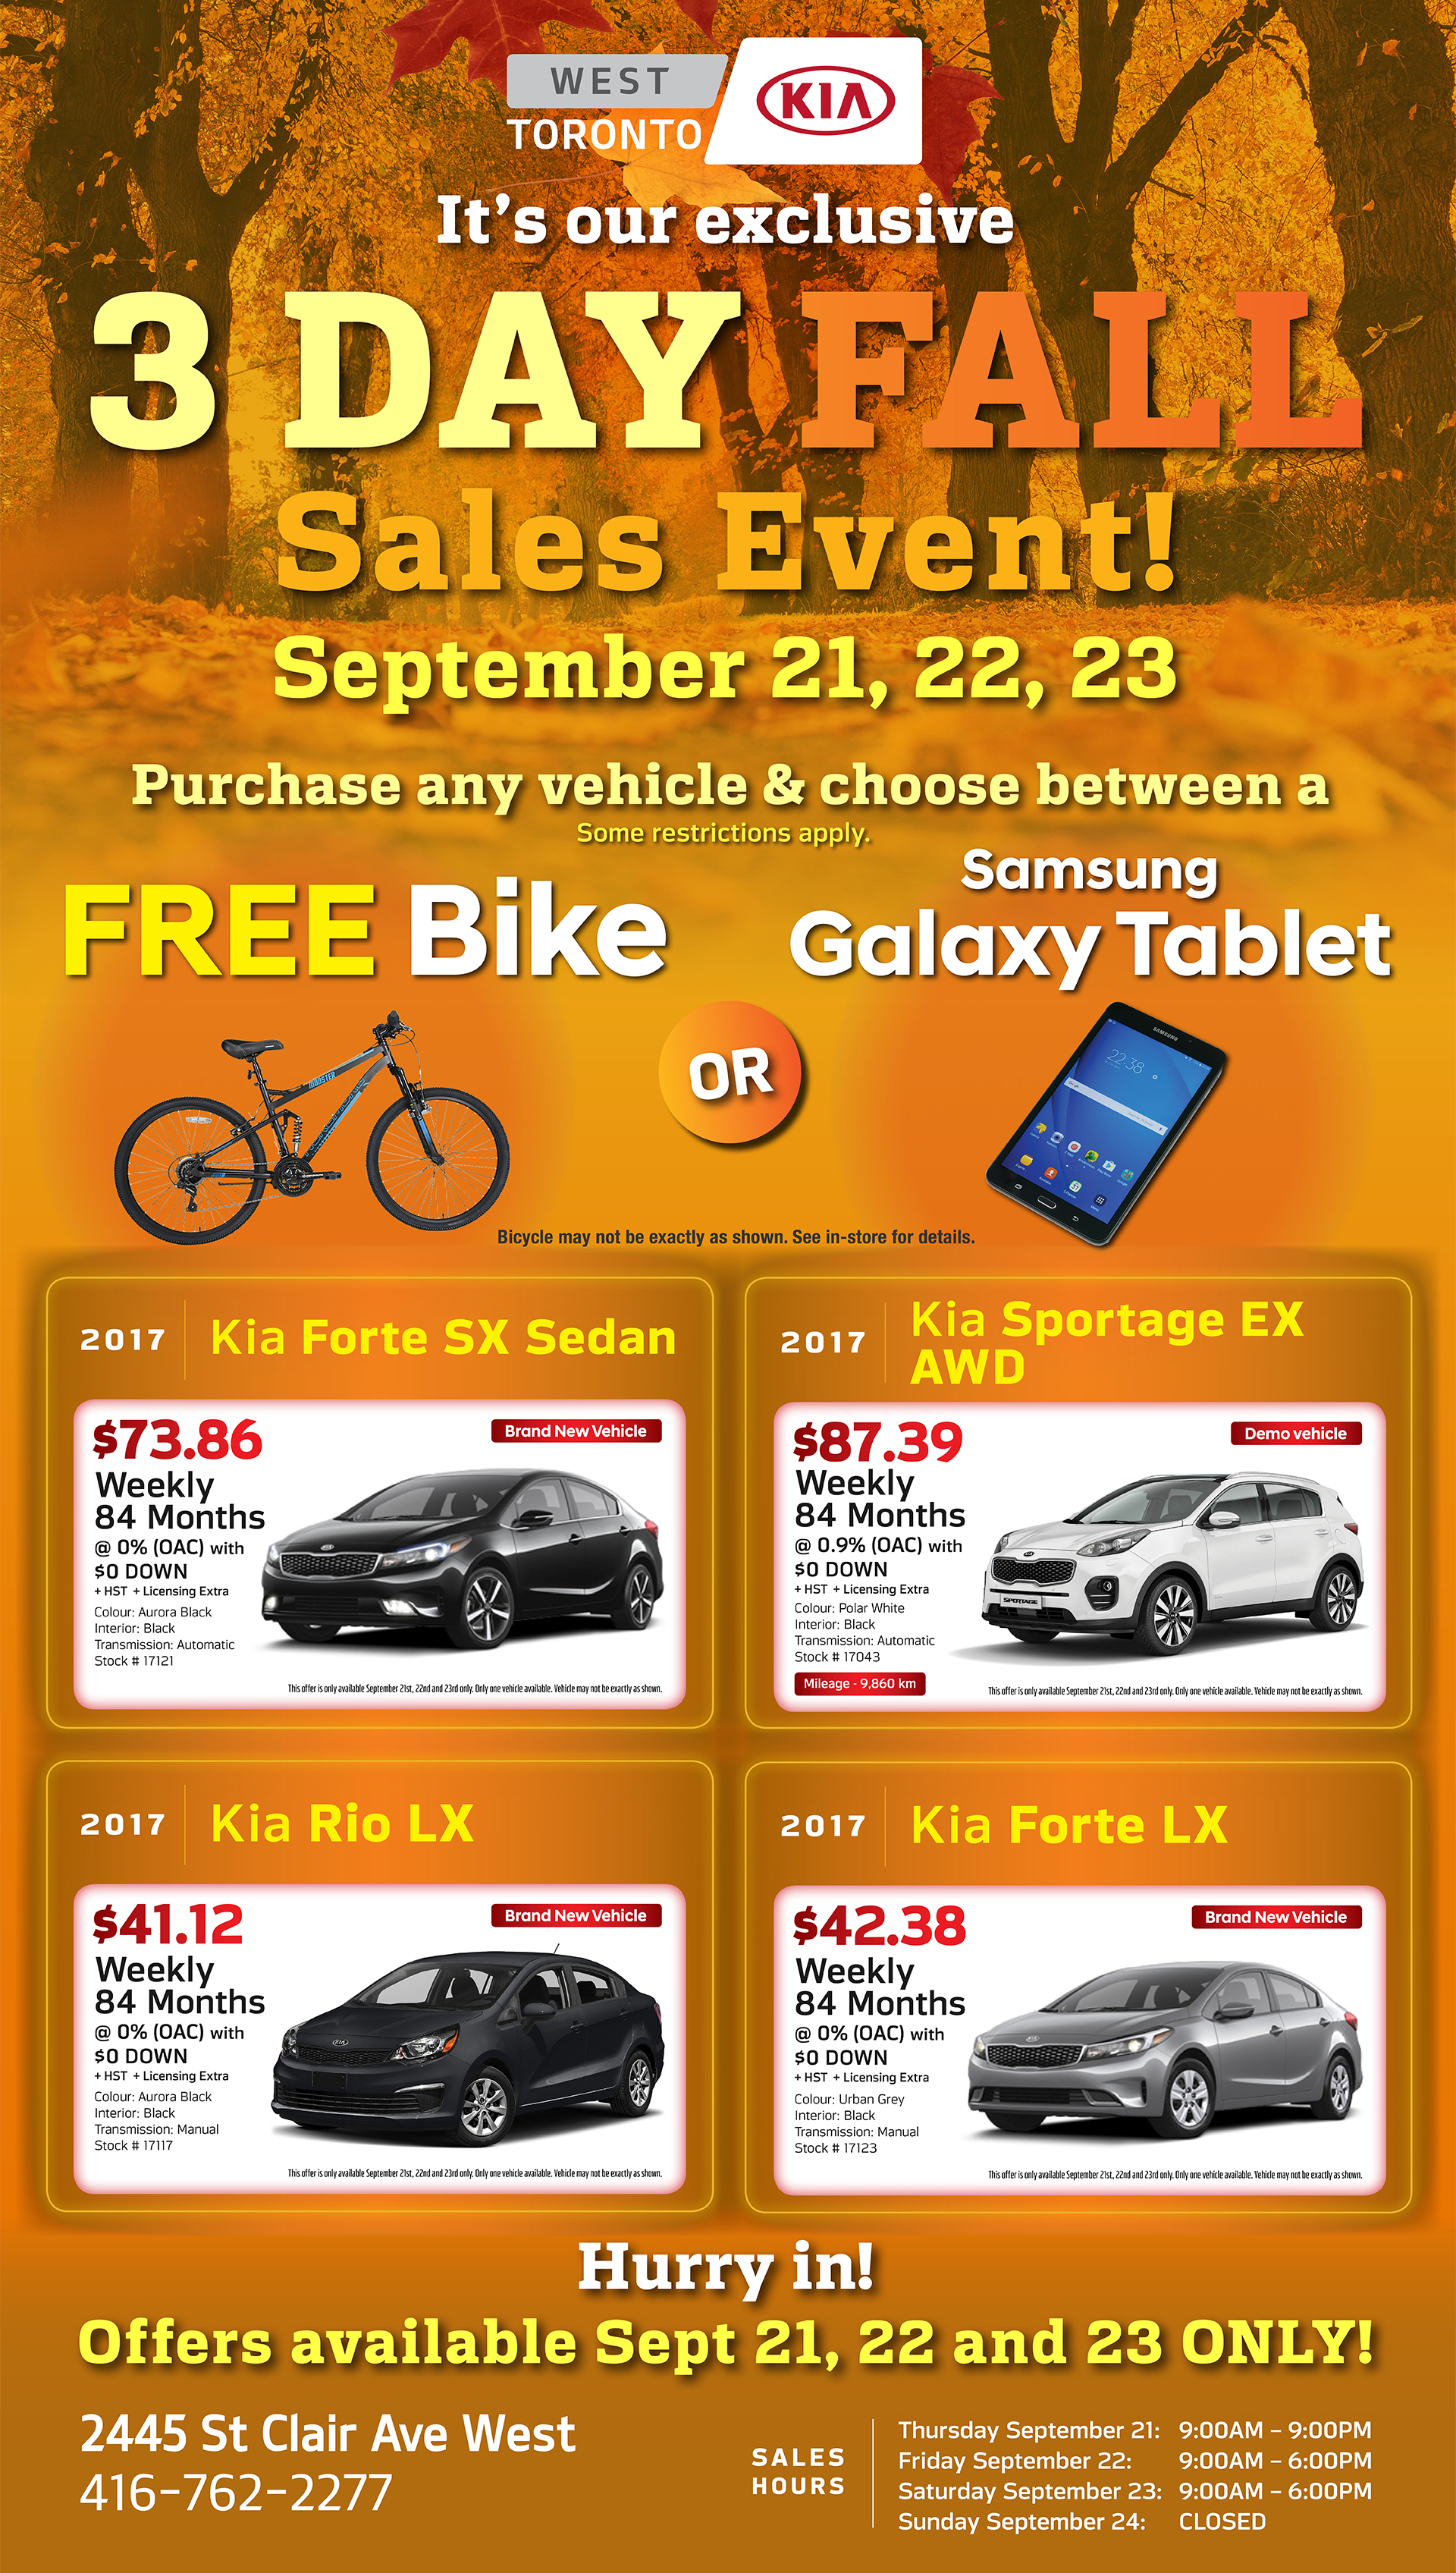 17696-TH-Sept-Kia-Fall-3-Day-Sales-Event-landing